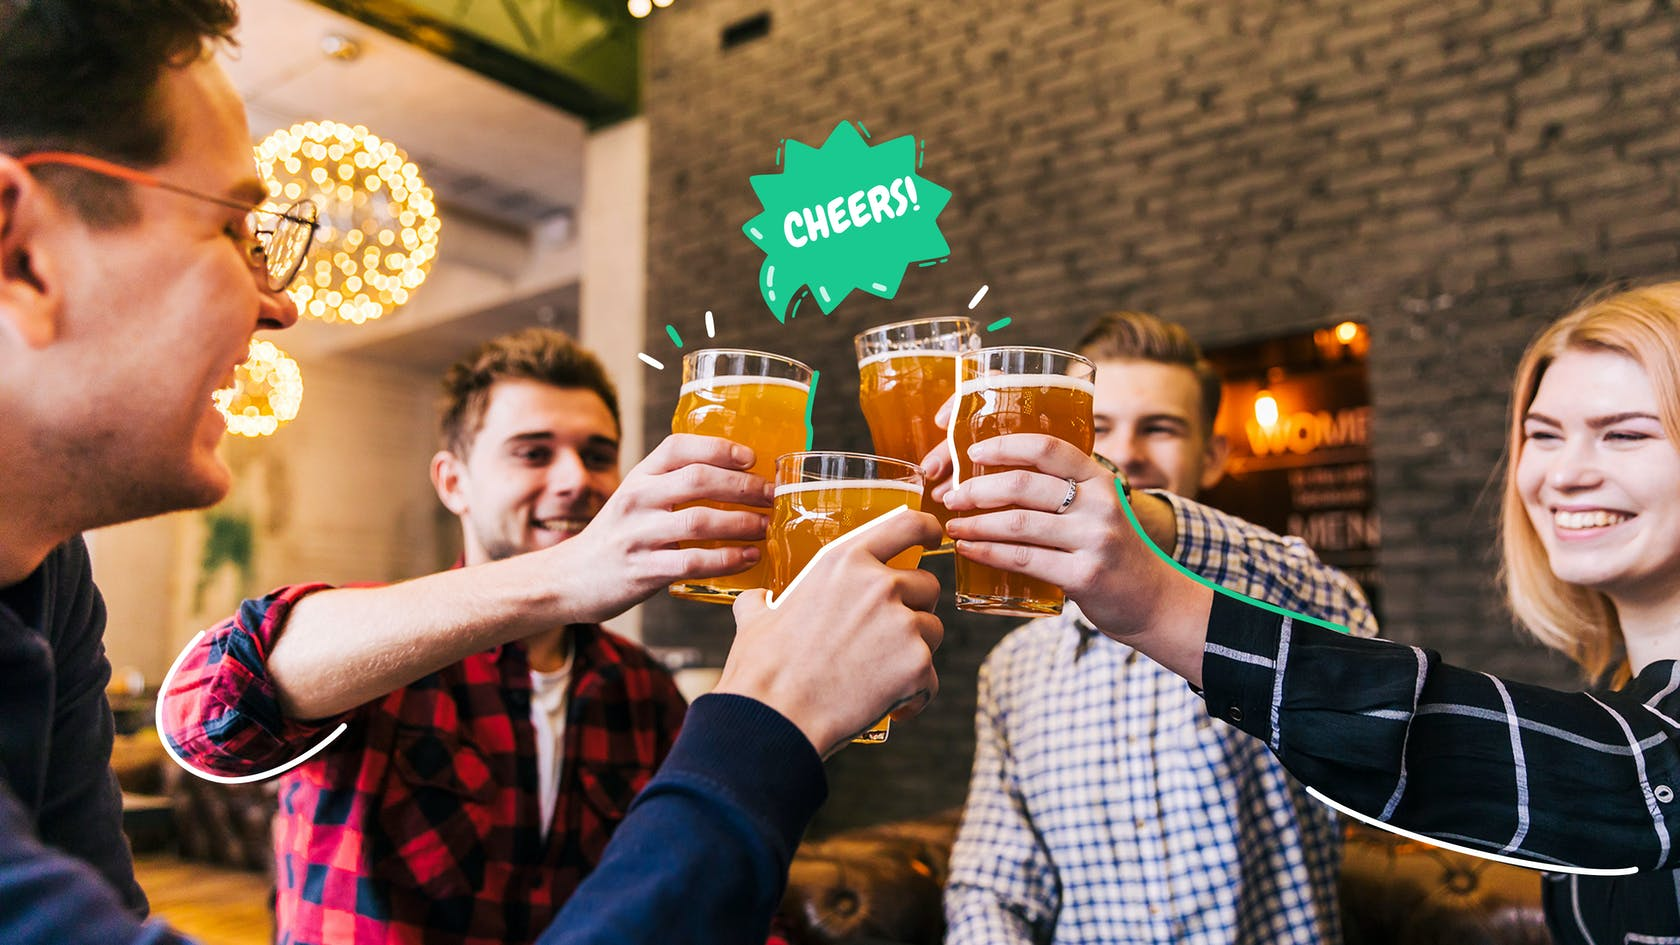 Keto Beer: Best Options for a Low-Carb Diet